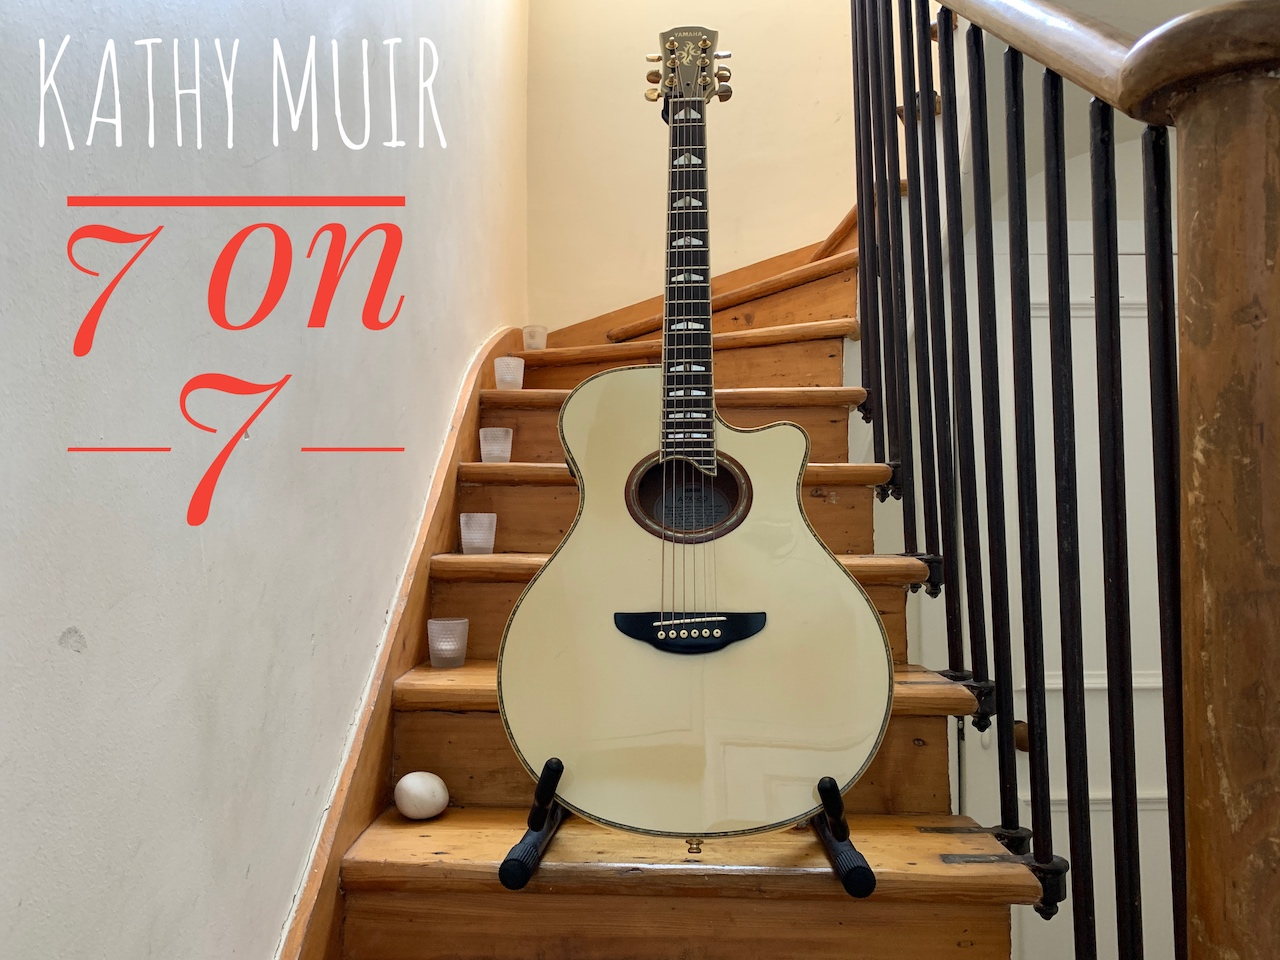 Kathy. Muir 7 on 7 Show taking place on her staircase